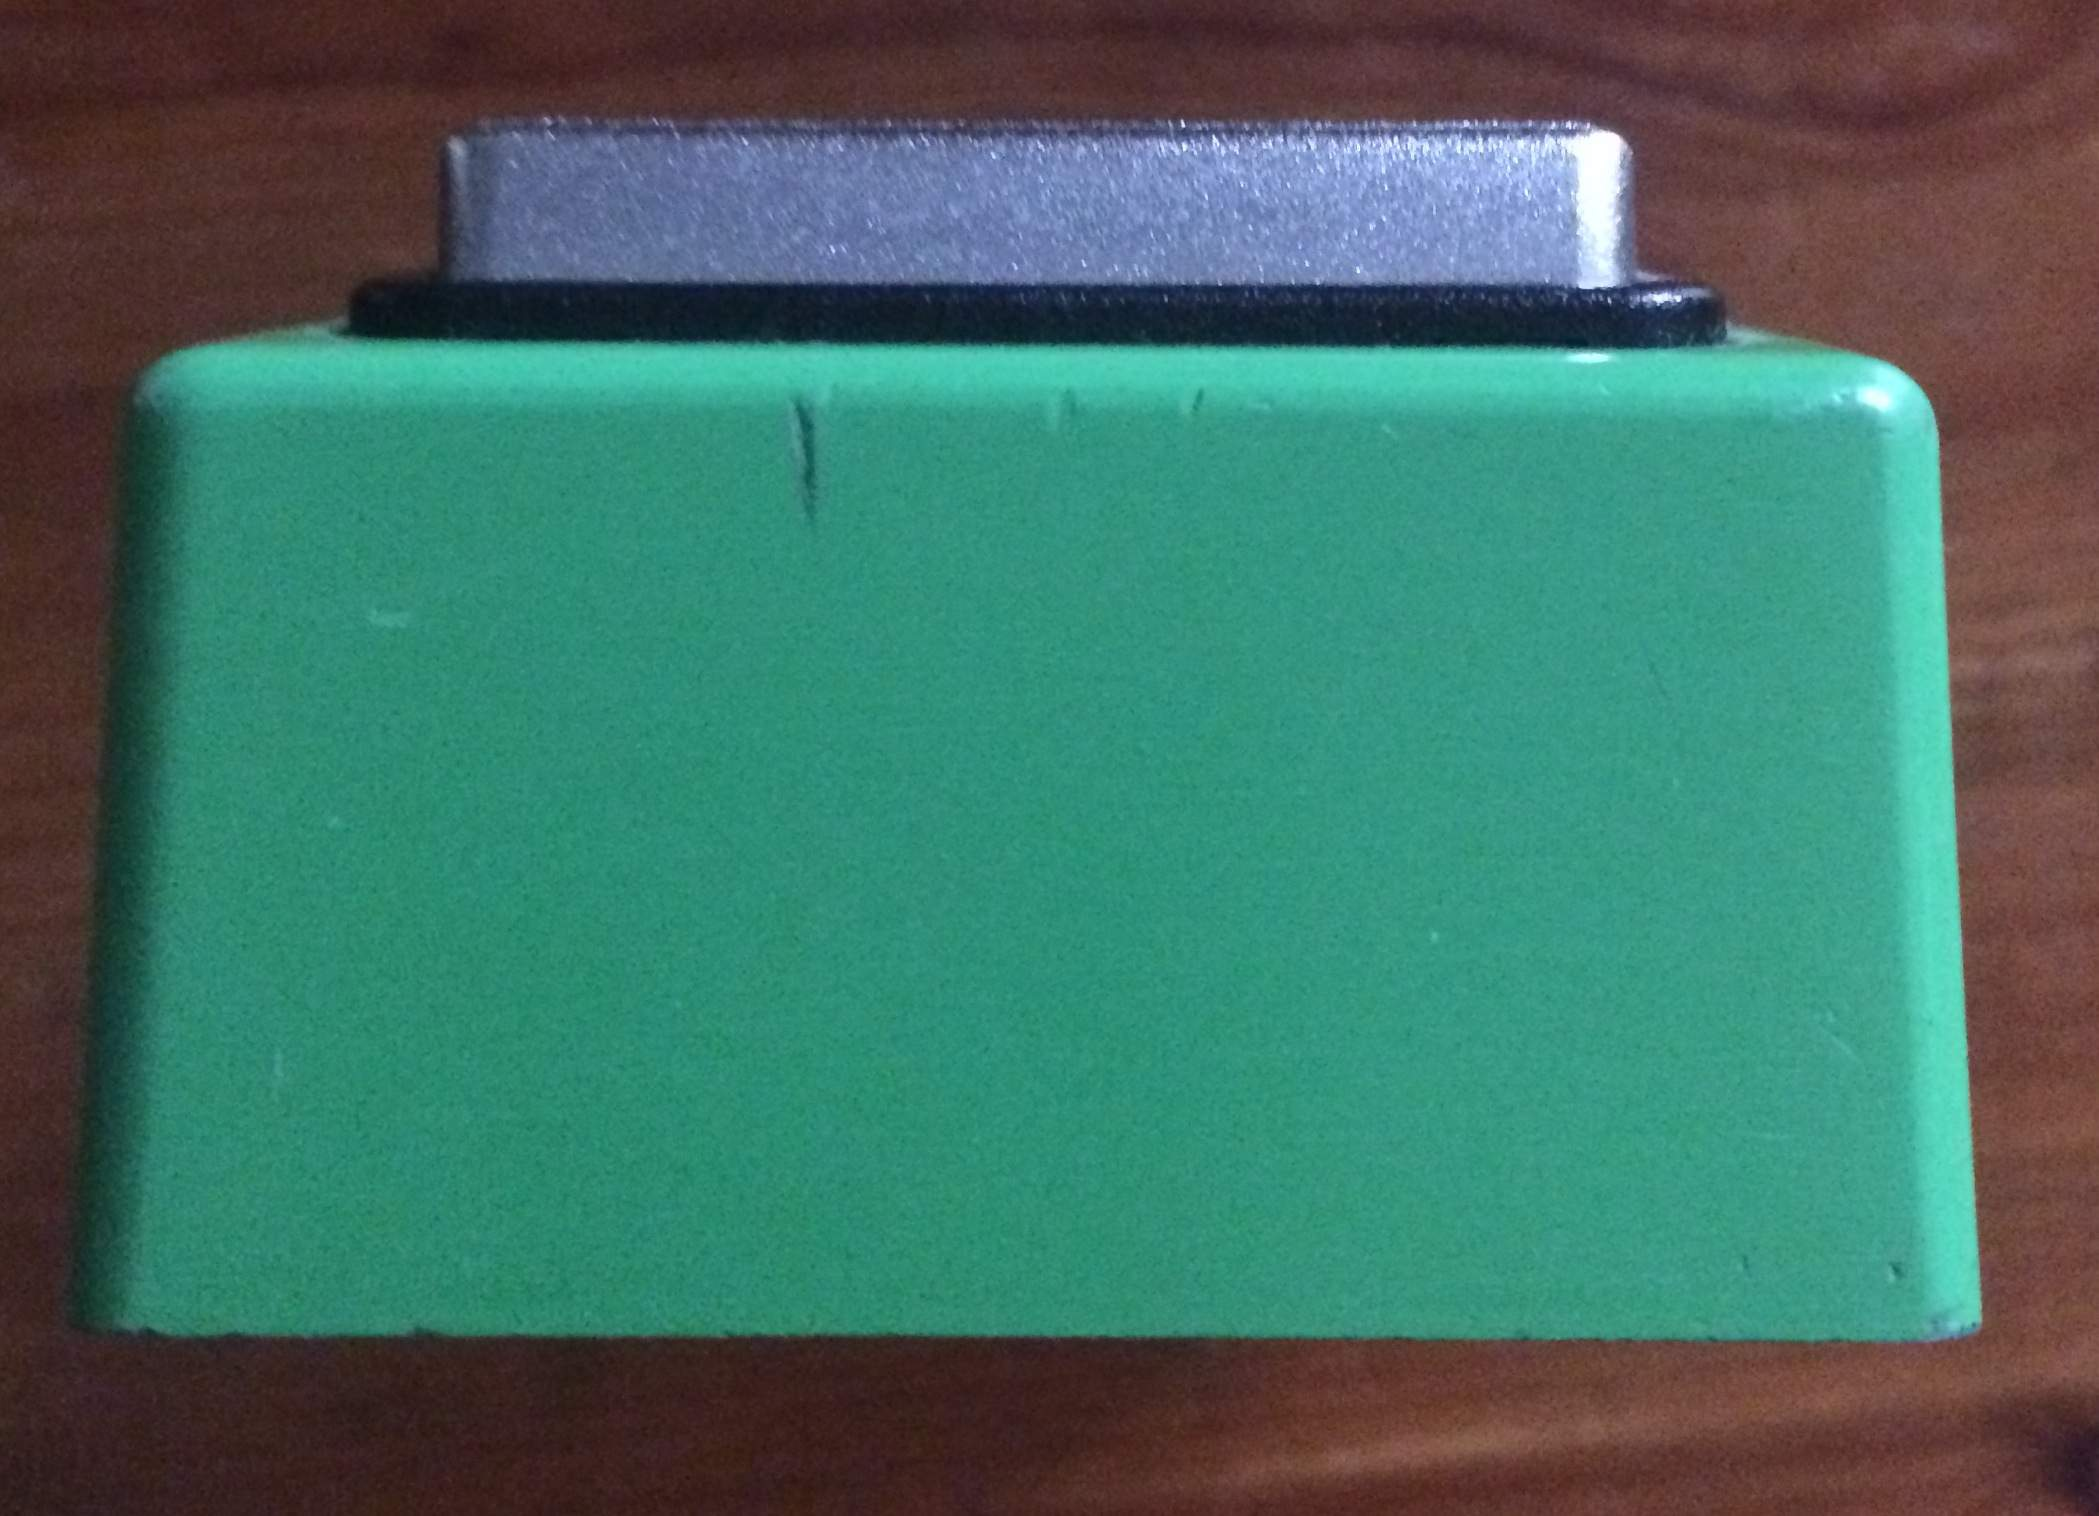 SOLD - Ibanez TS- 9 Tube Screamer Modded w/JRC4558D, RC4558P